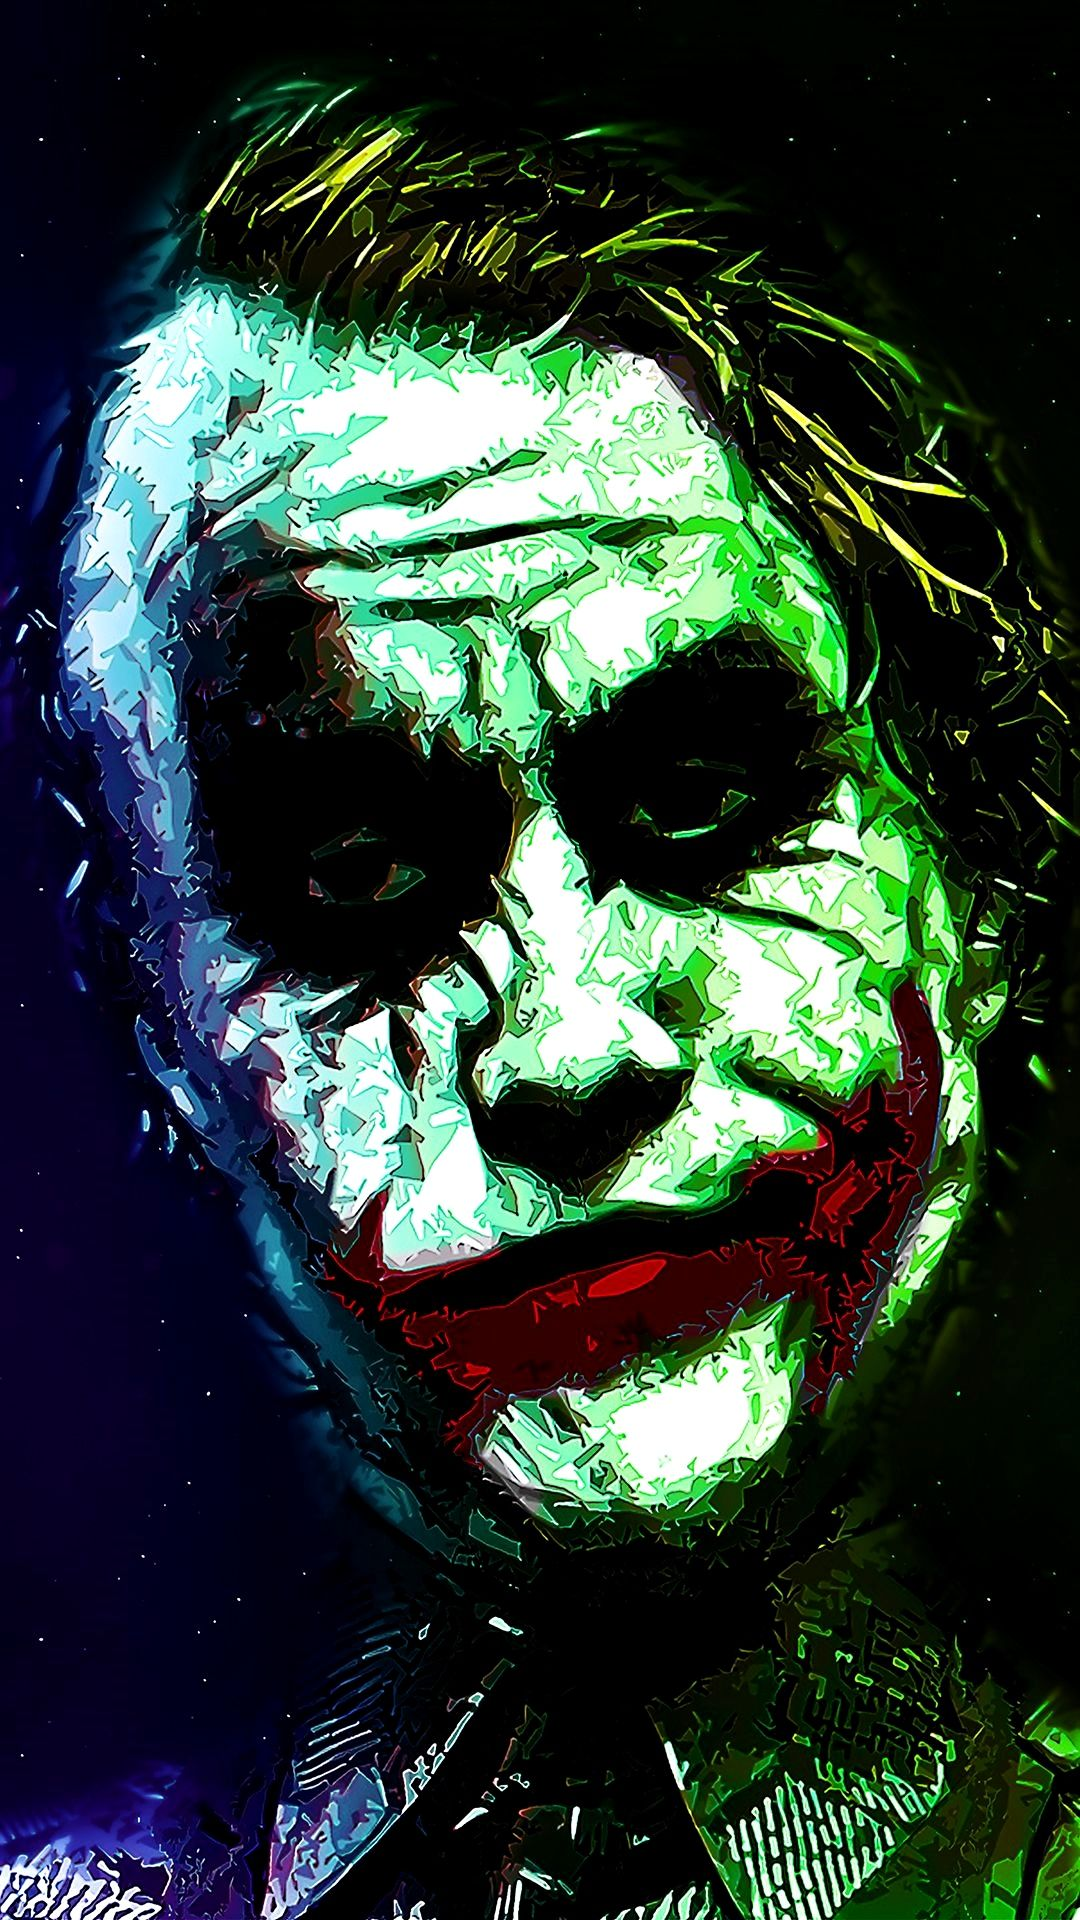 Joker Wallpaper 4k Mobile Trick Joker Wallpapers Joker Hd Wallpaper Joker Images